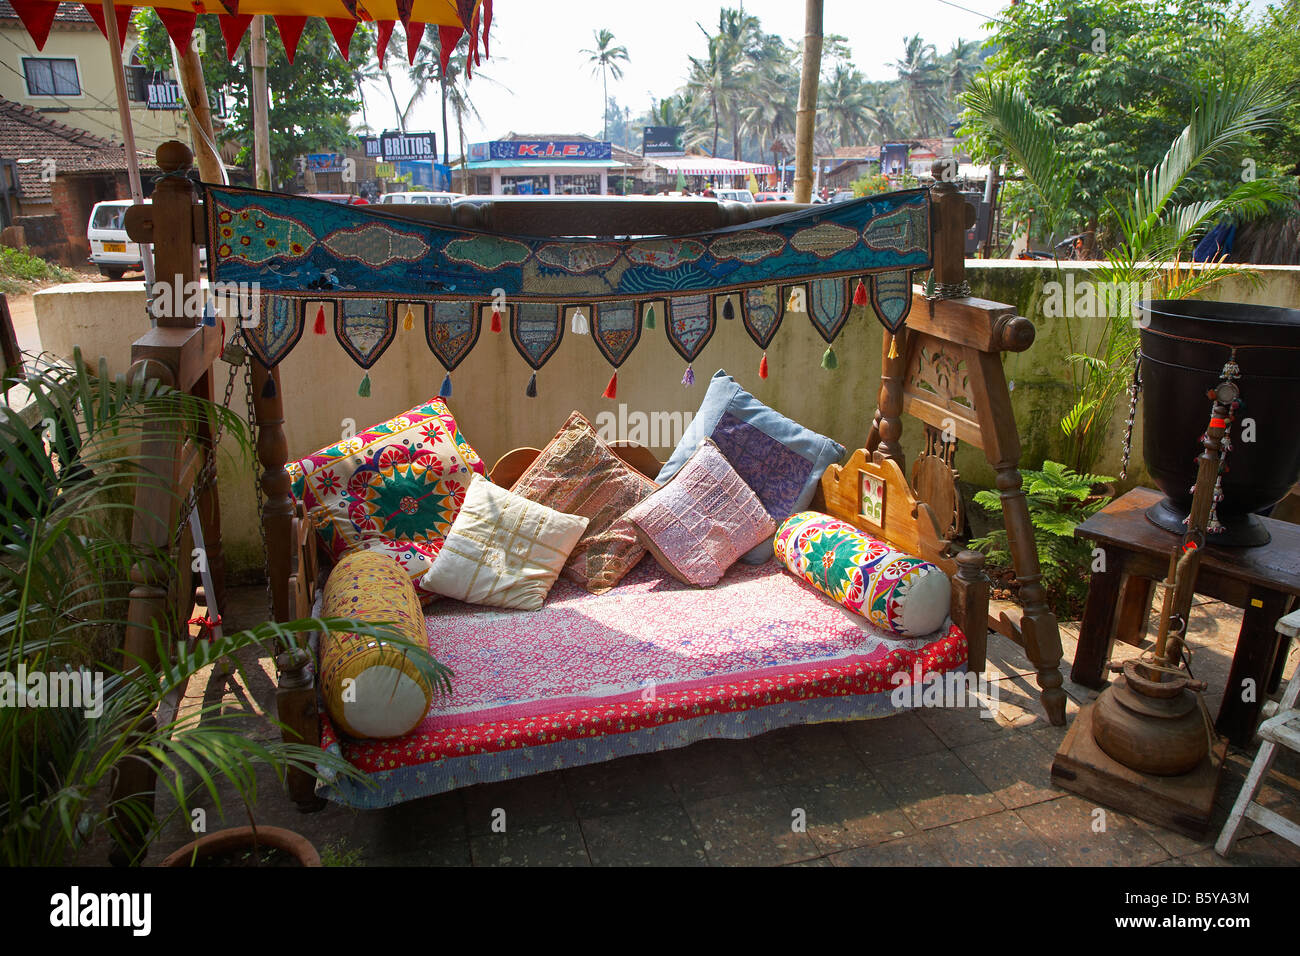 Traditional Indian Furniture at Baga Beach, Goa, India - Stock Image